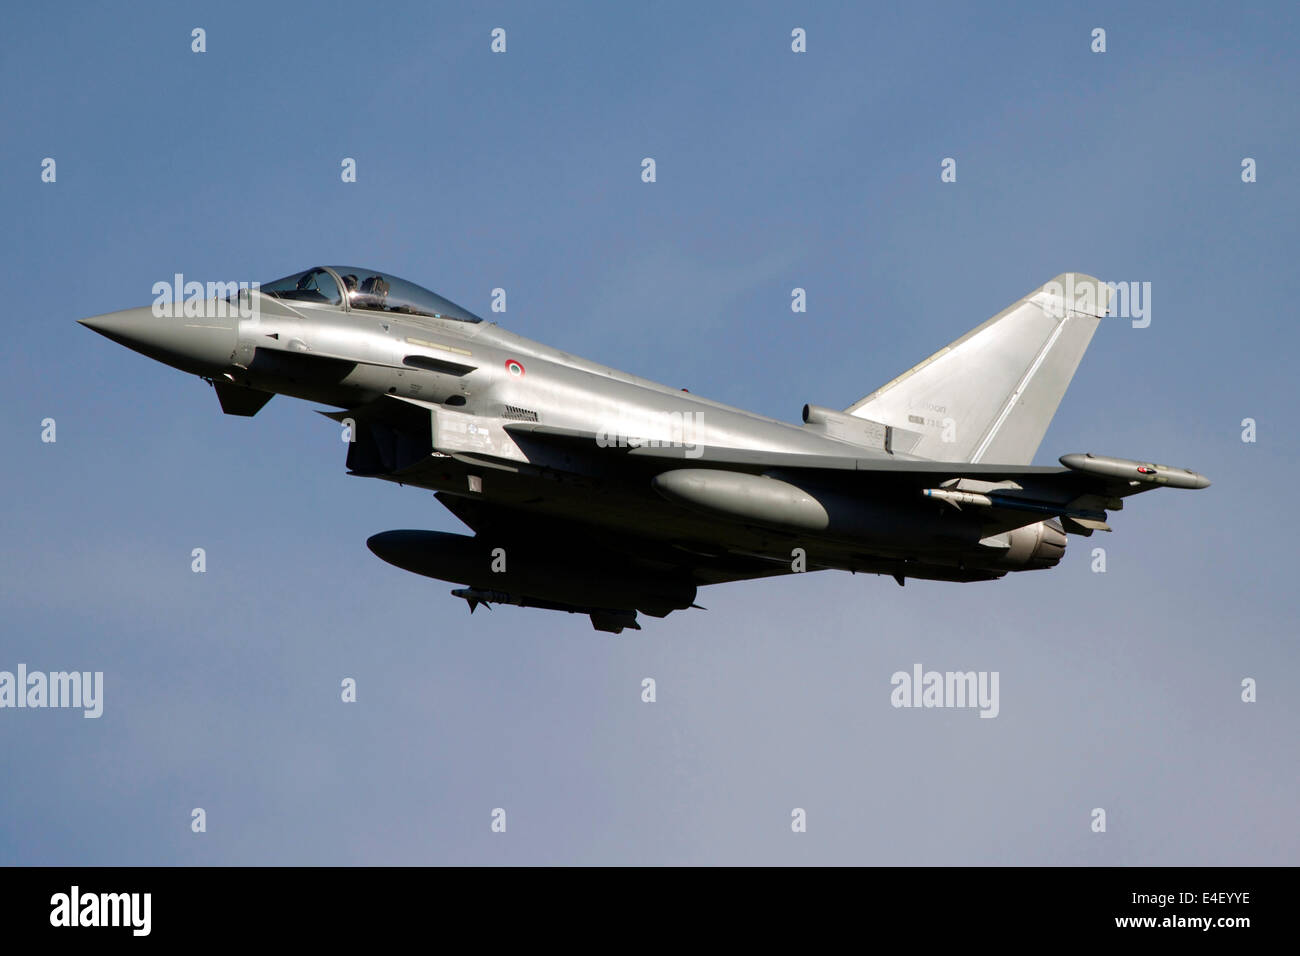 A Eurofighter Typhoon 2000 multirole fighter aircraft of the Italian Air Force in flight over Italy. - Stock Image